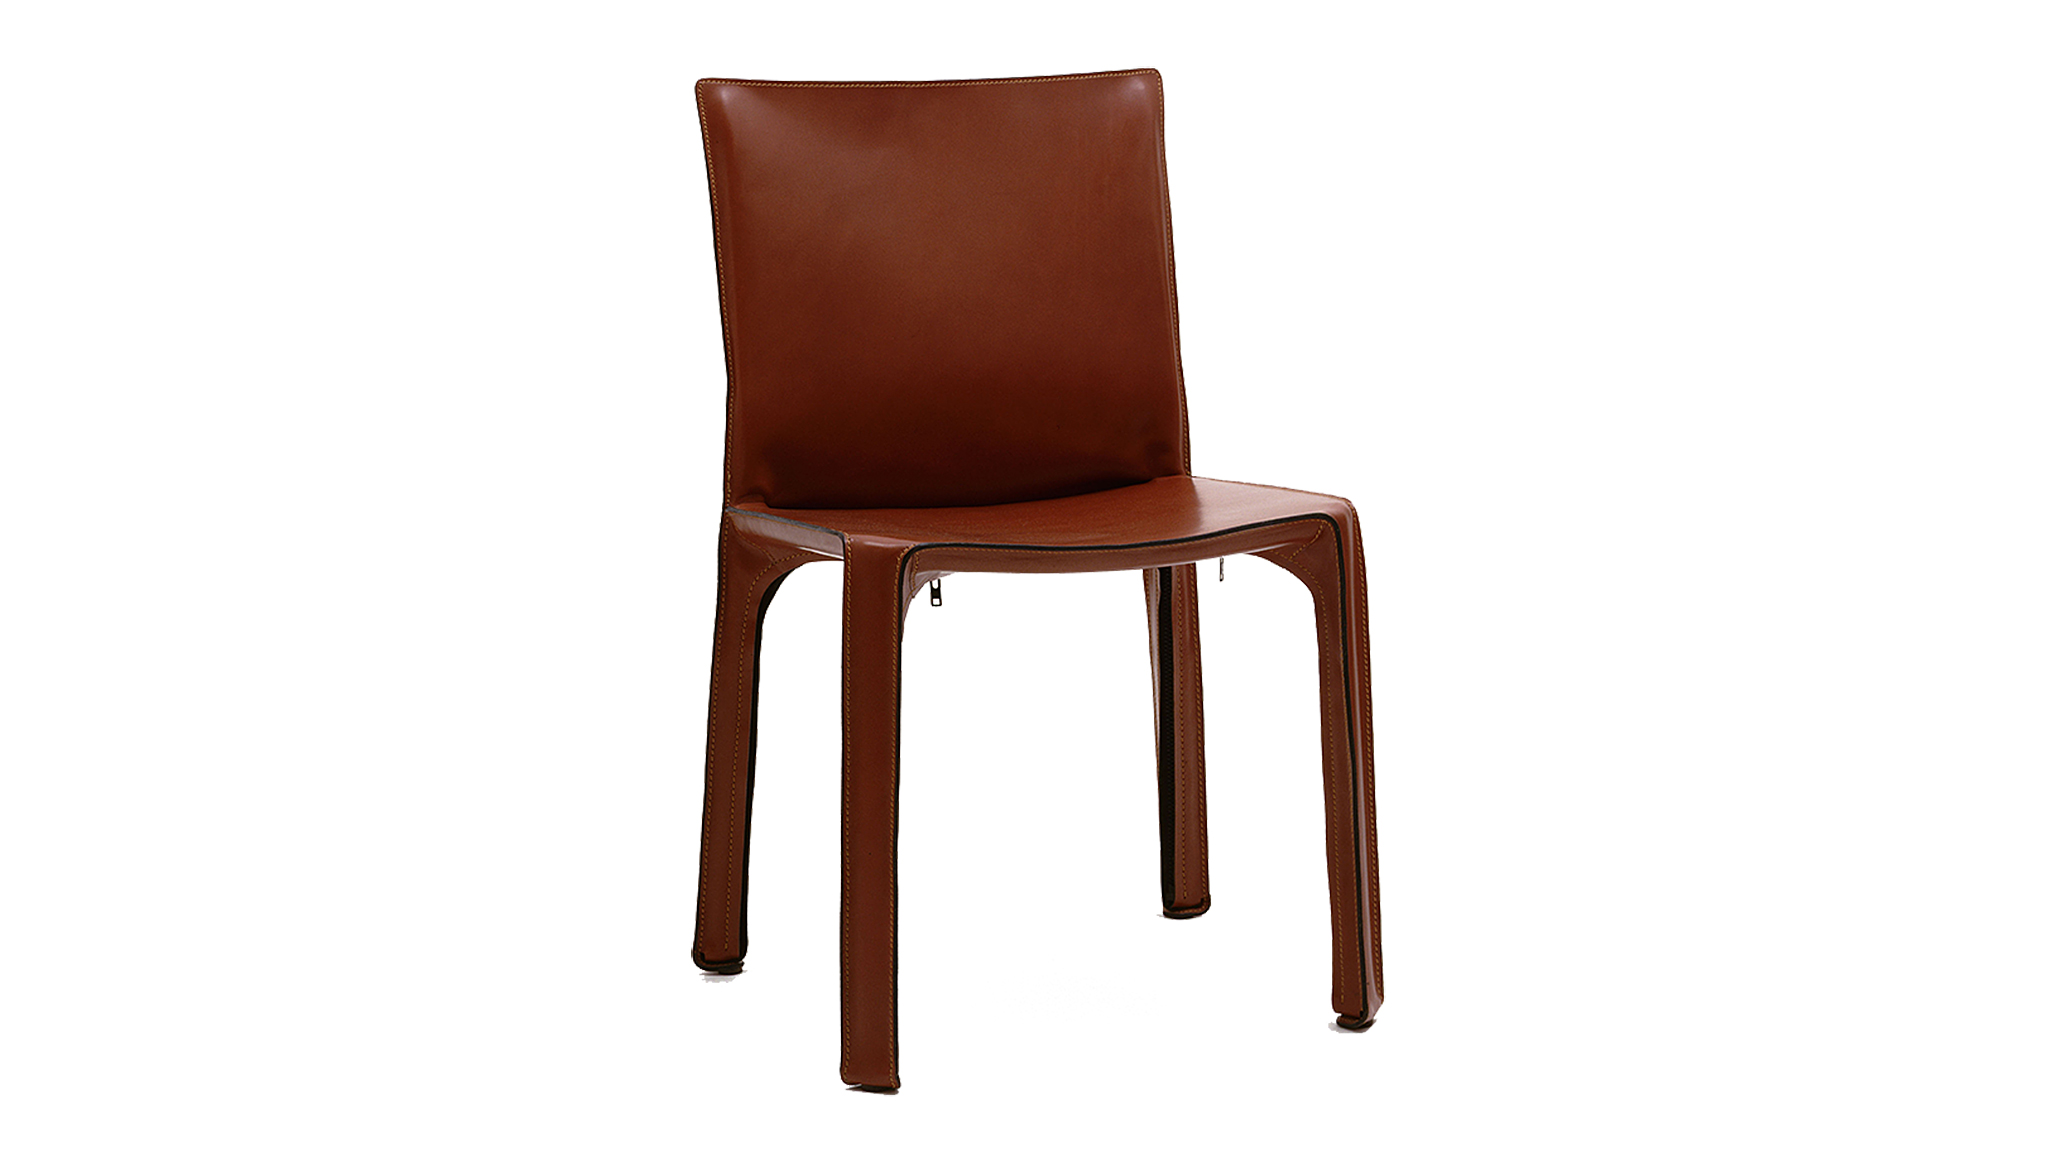 Design classic Mario Bellini s Cab chair